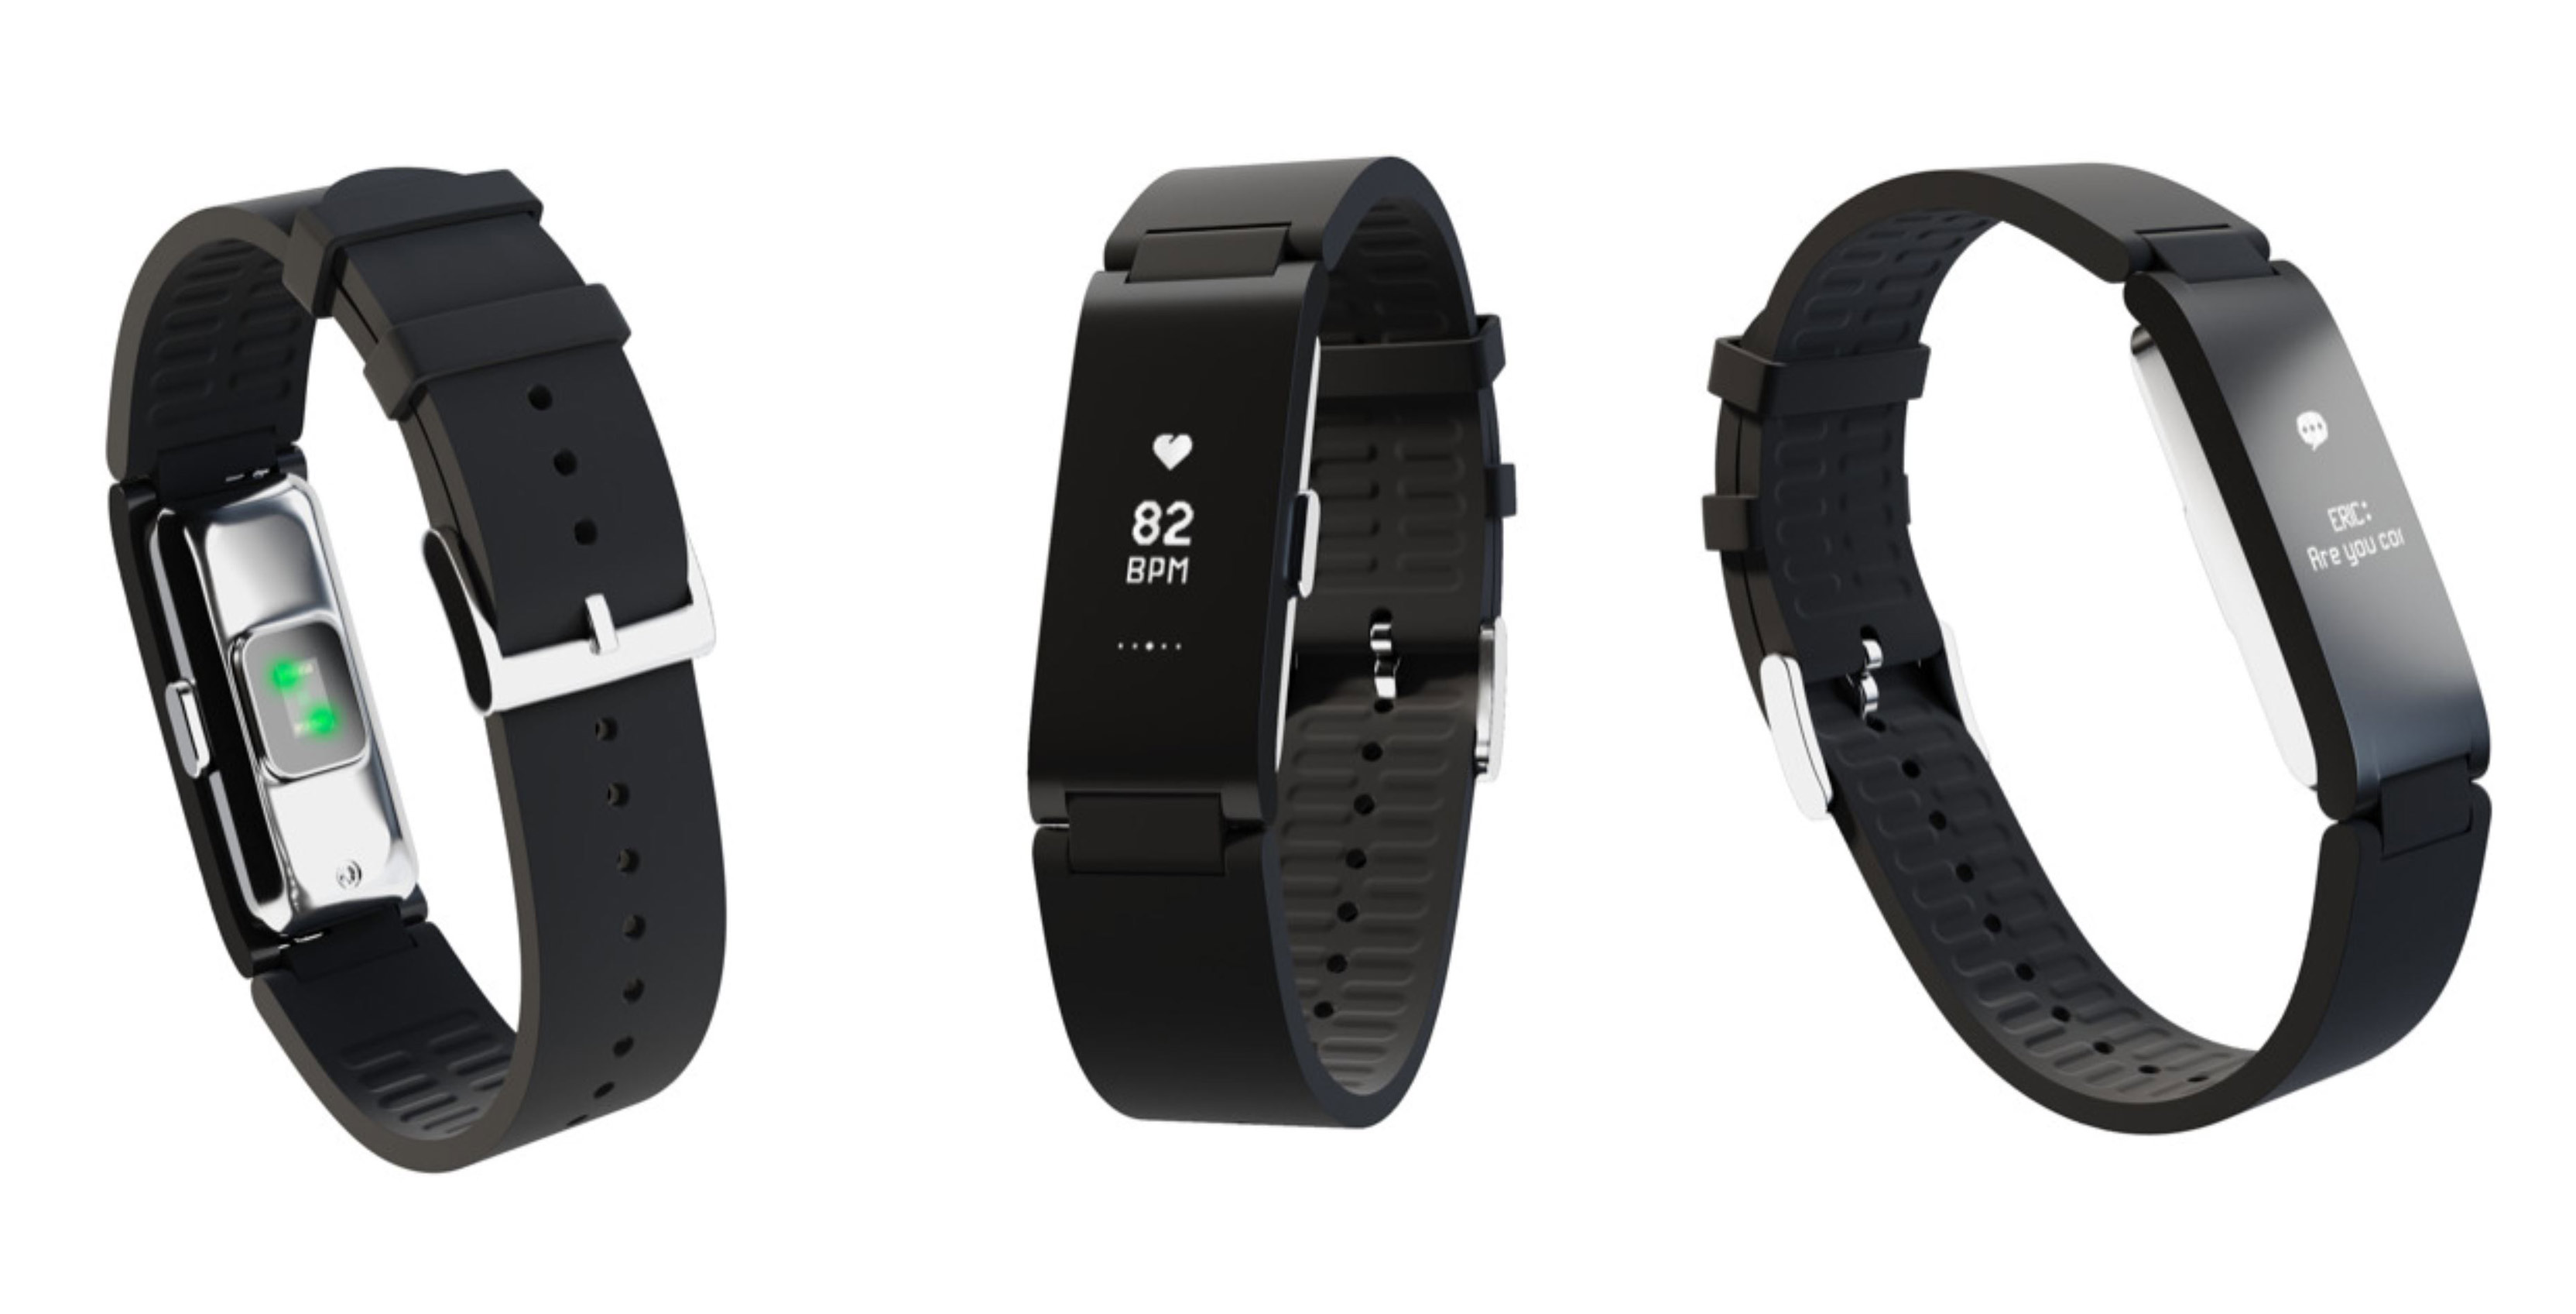 Withings Launches New Pulse HR Fitness Tracker